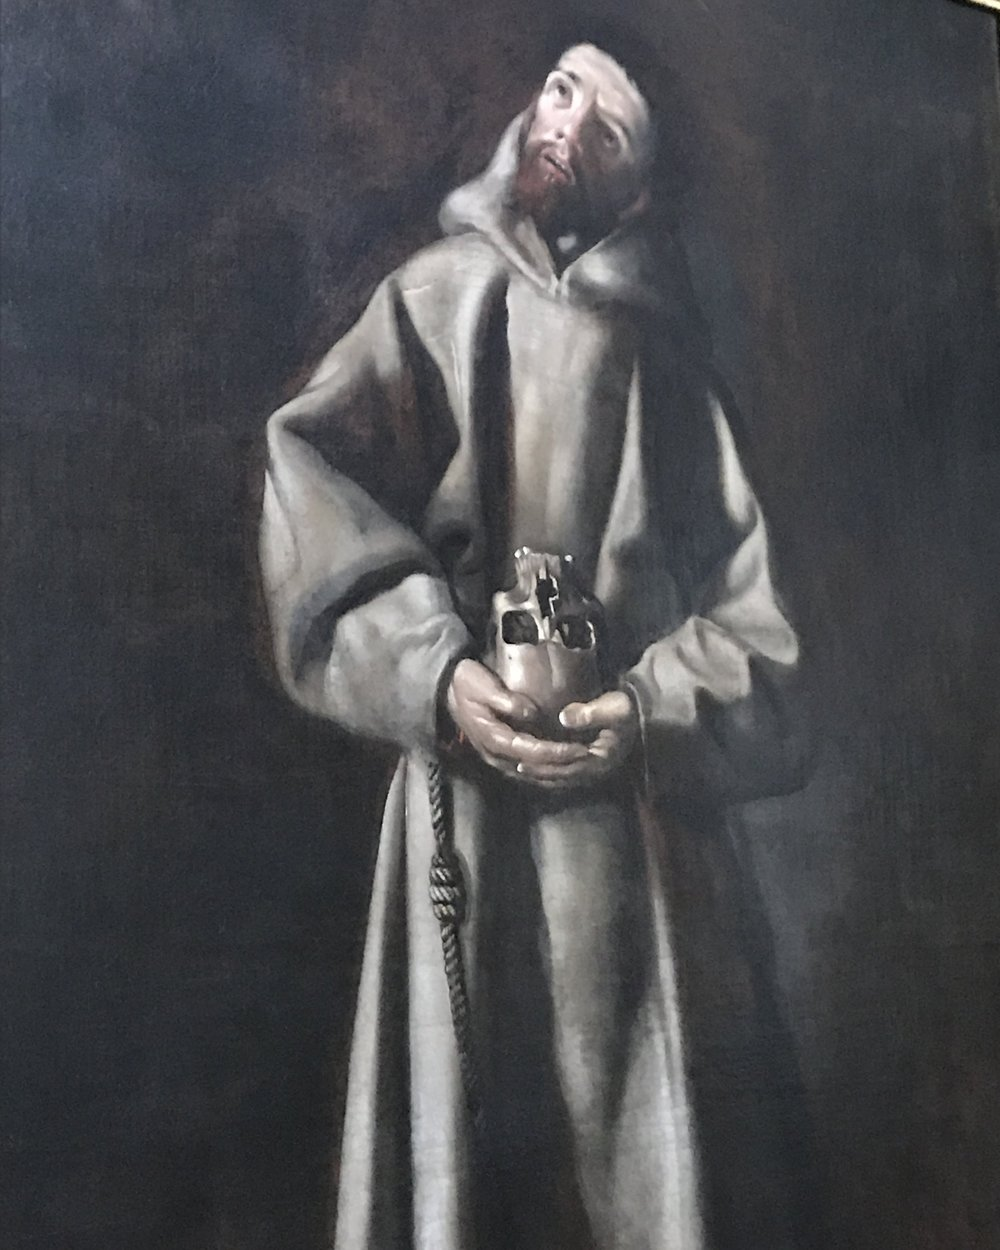 St Francis of Assisi - This portrait of St. Francis, by an unknown artist, depicts Francis holding a skull.  St. Francis has often been portrayed contemplating a skull, which is believed to be a reference to the crucifixion, which took place a Golgotha, the place of the skull.  The mark of the stigmata can also be seen on his left foot.